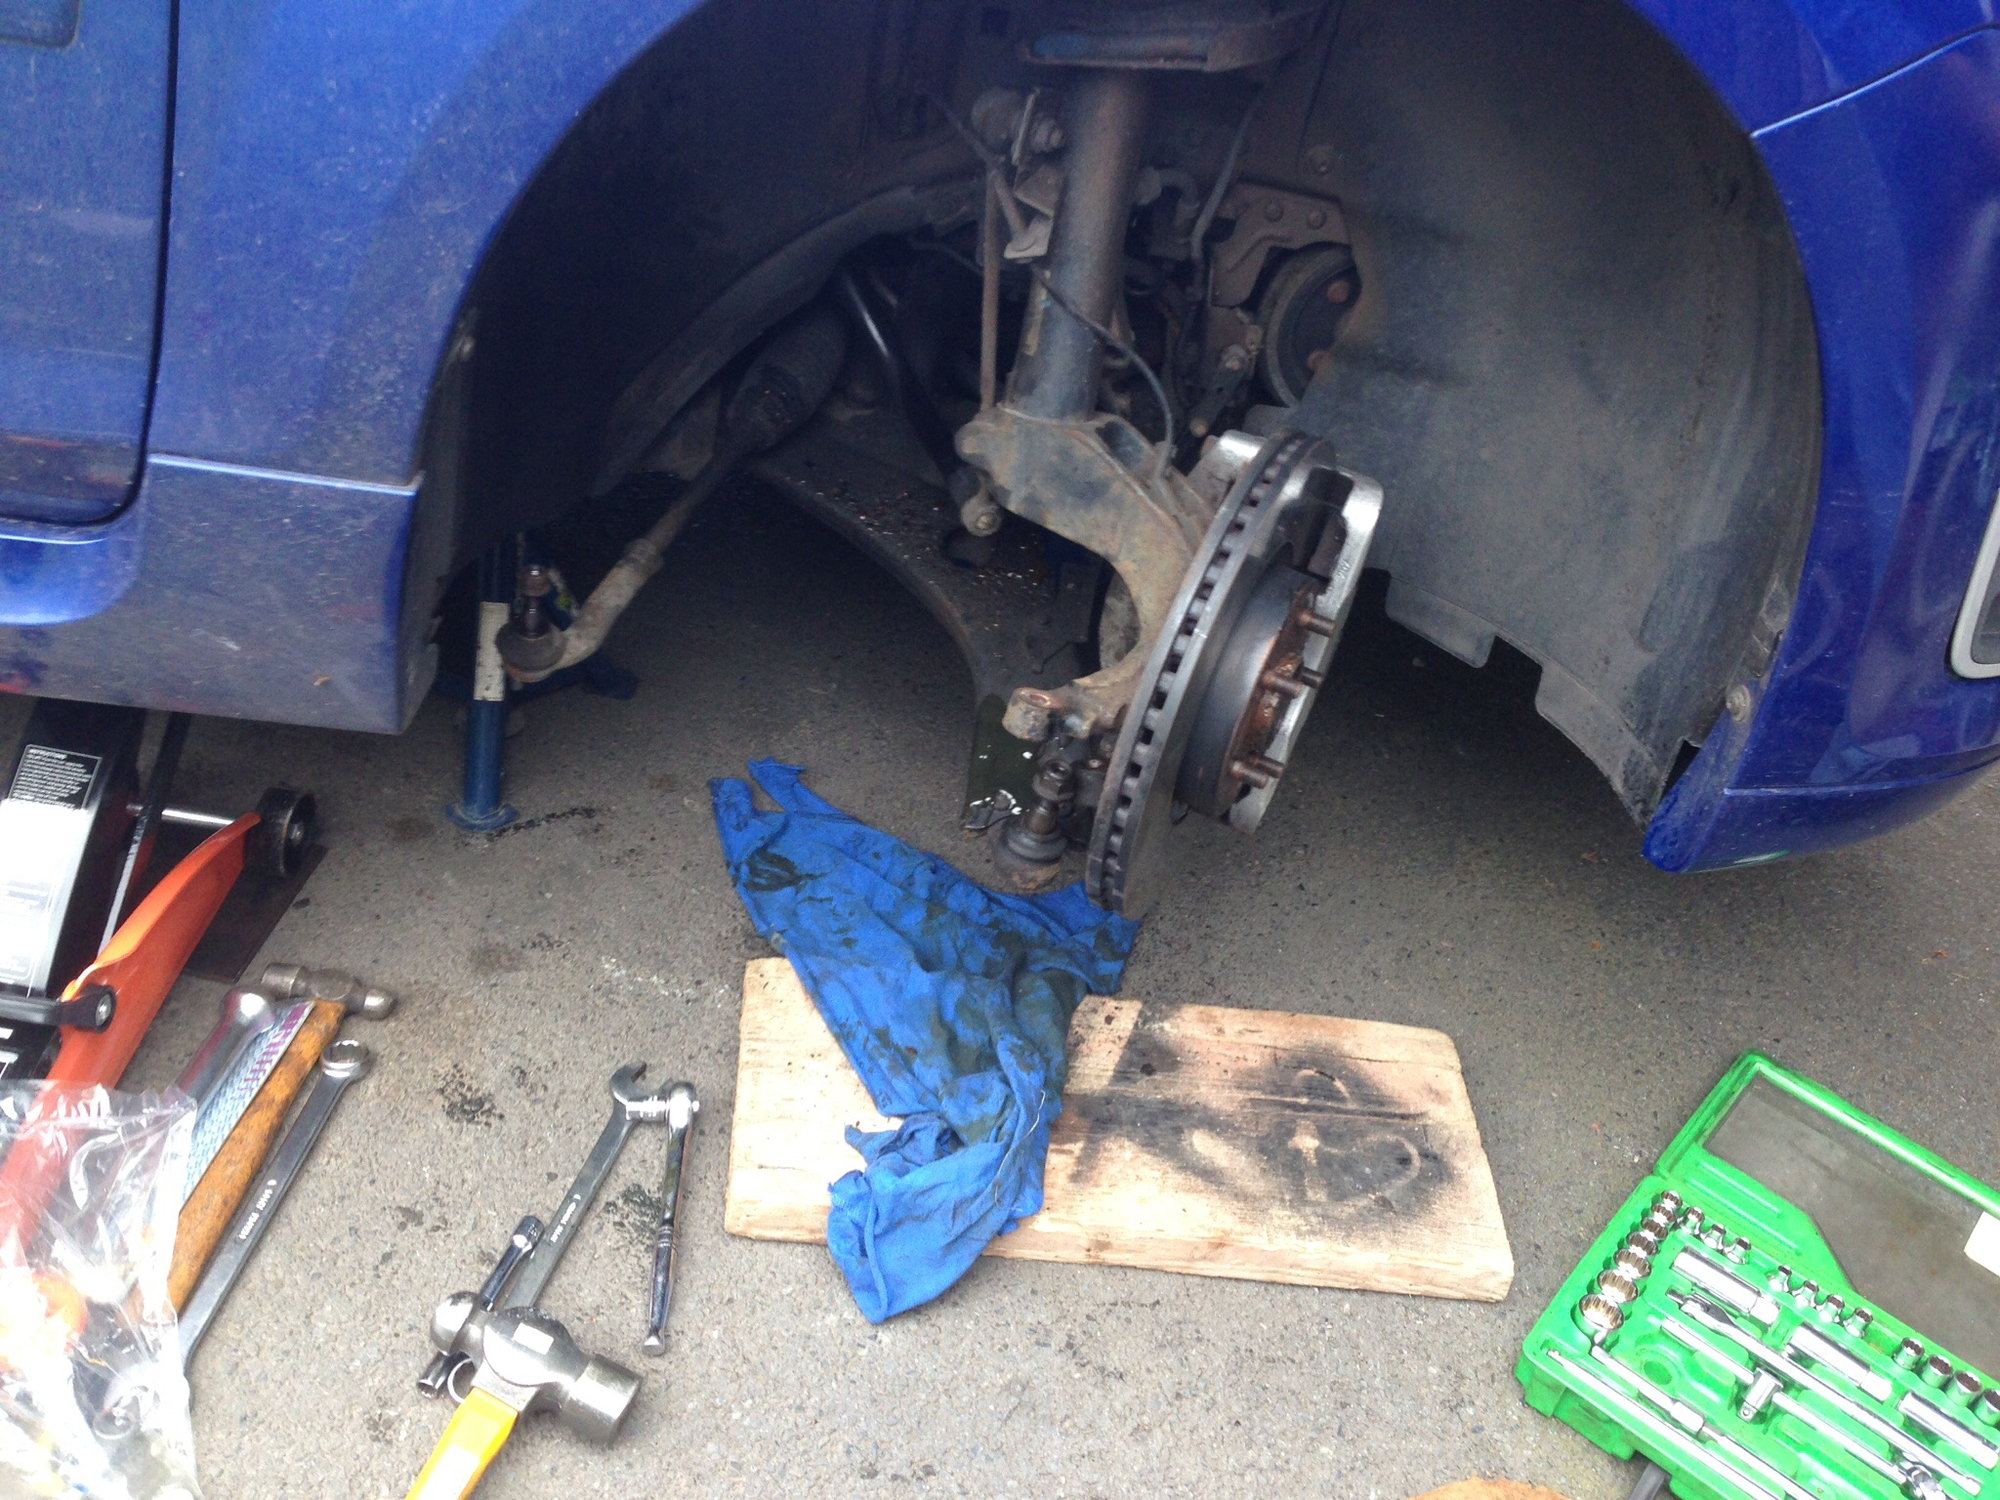 Focus St 2 5 off side drive shaft replacement DIY also covers inner